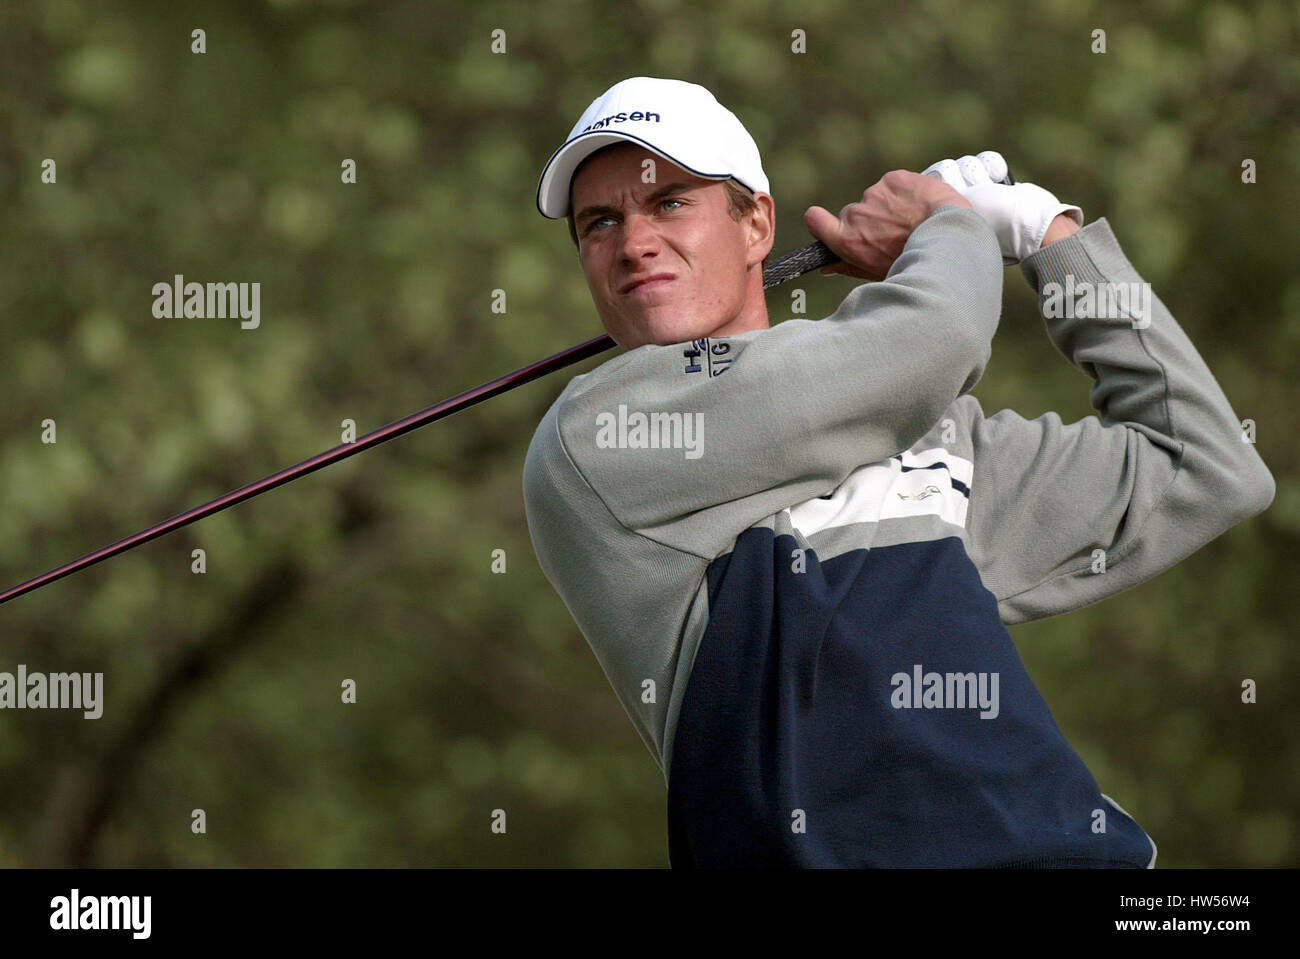 MADS VIBE-HASTRUP DENMARK THE BELFRY SUTTON COLDFIELD BIRMINGHAM 10 May 2002 - Stock Image